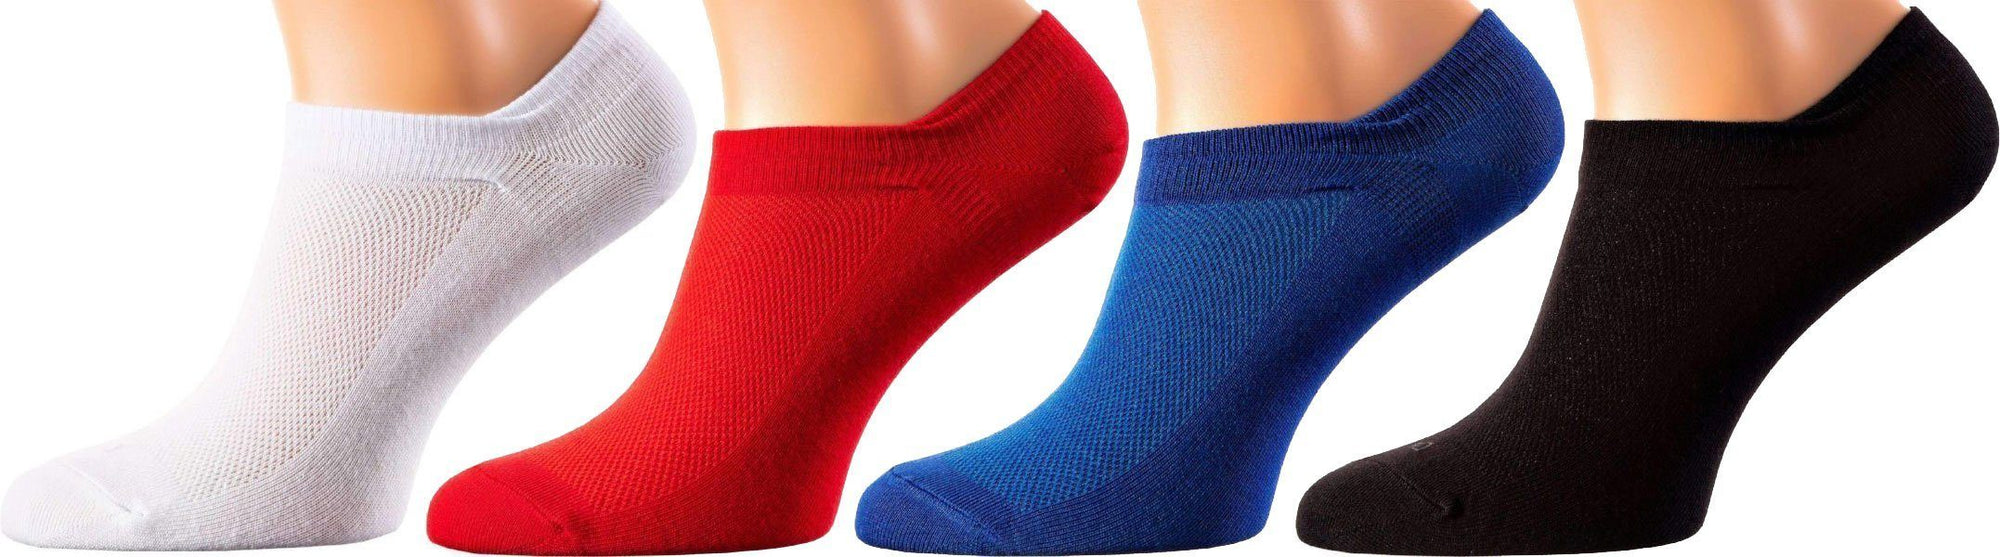 Monte Carlo Collection - Mercerized Cotton Socks - Quarter Length - Sizes: M-XL